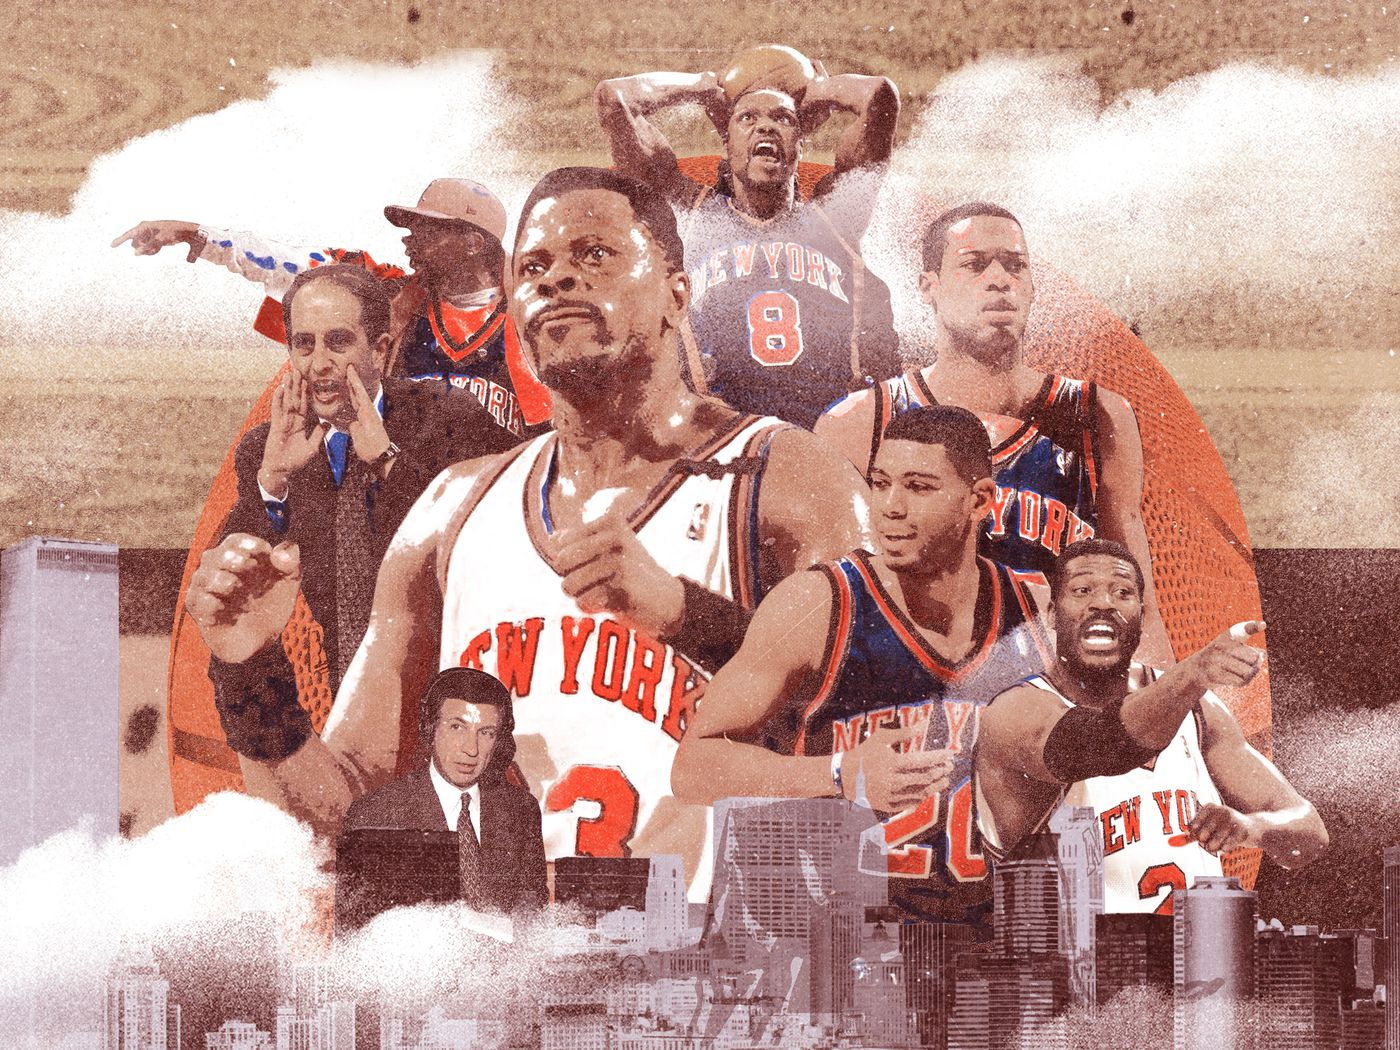 d454f0e10 In the Knick of Time  The Story of the 1998-99 Knicks - The Ringer